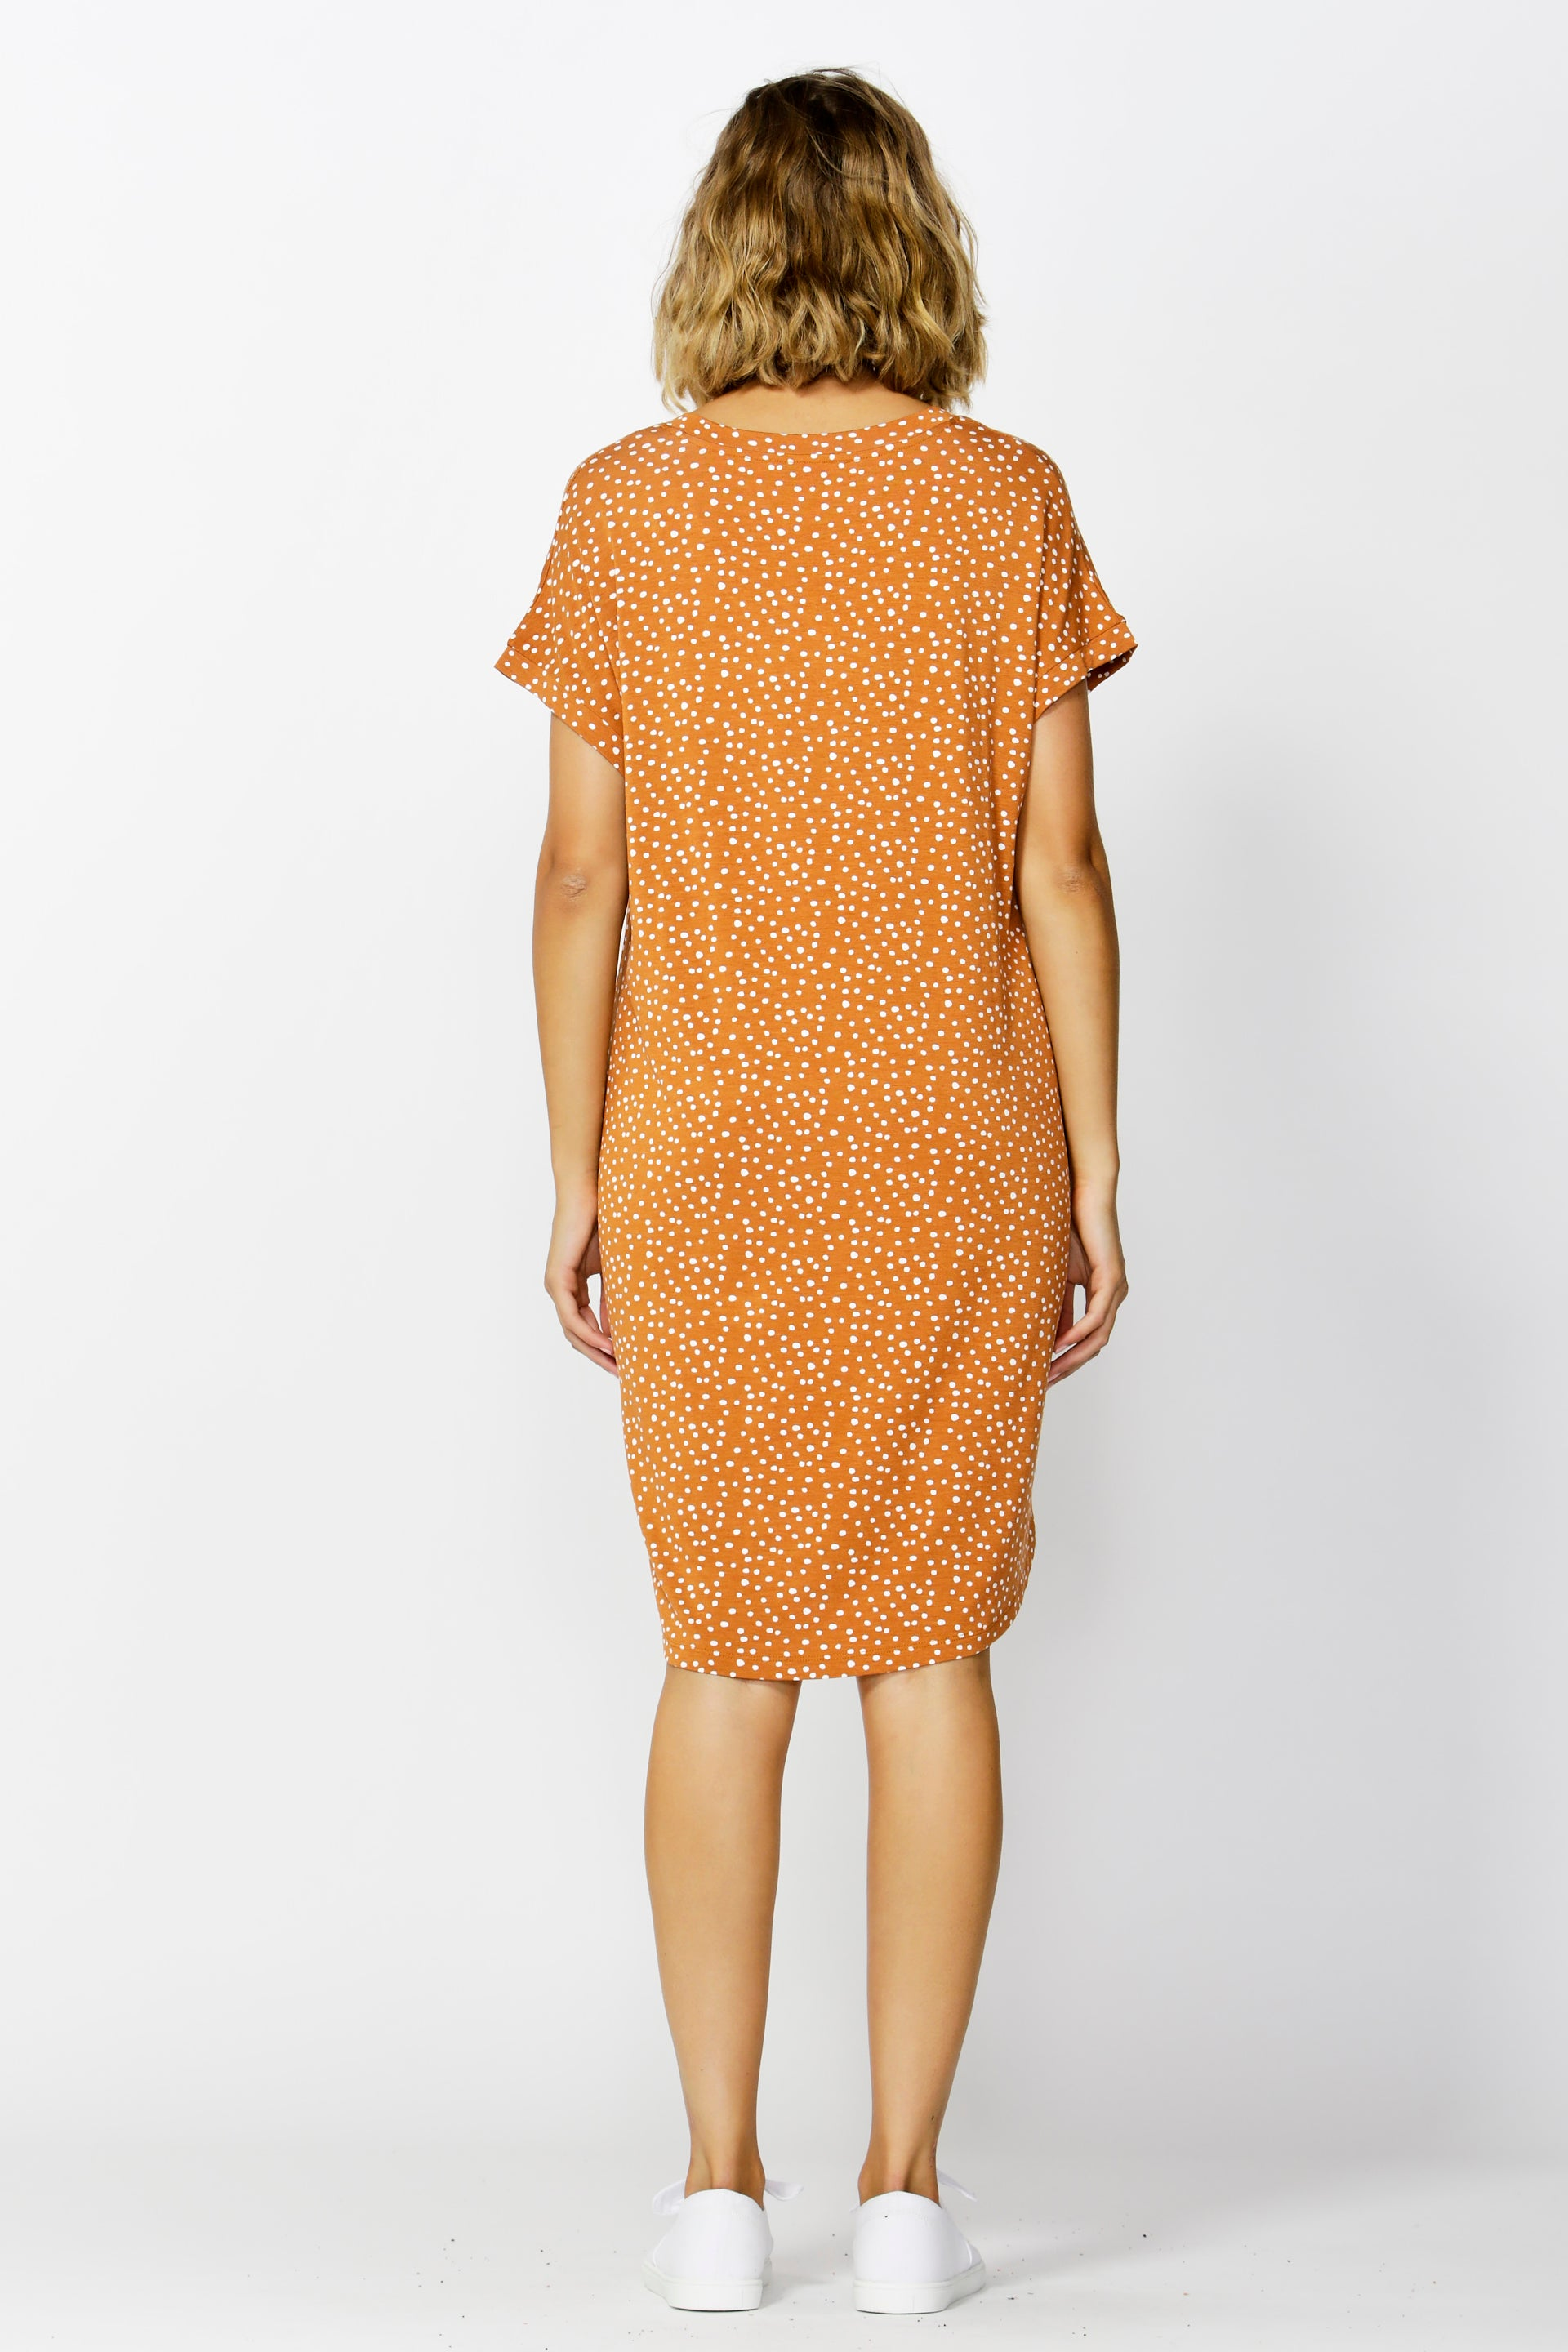 Betty Basics Arizona Dress in Clay Spot Size 8 or 10 ONLY